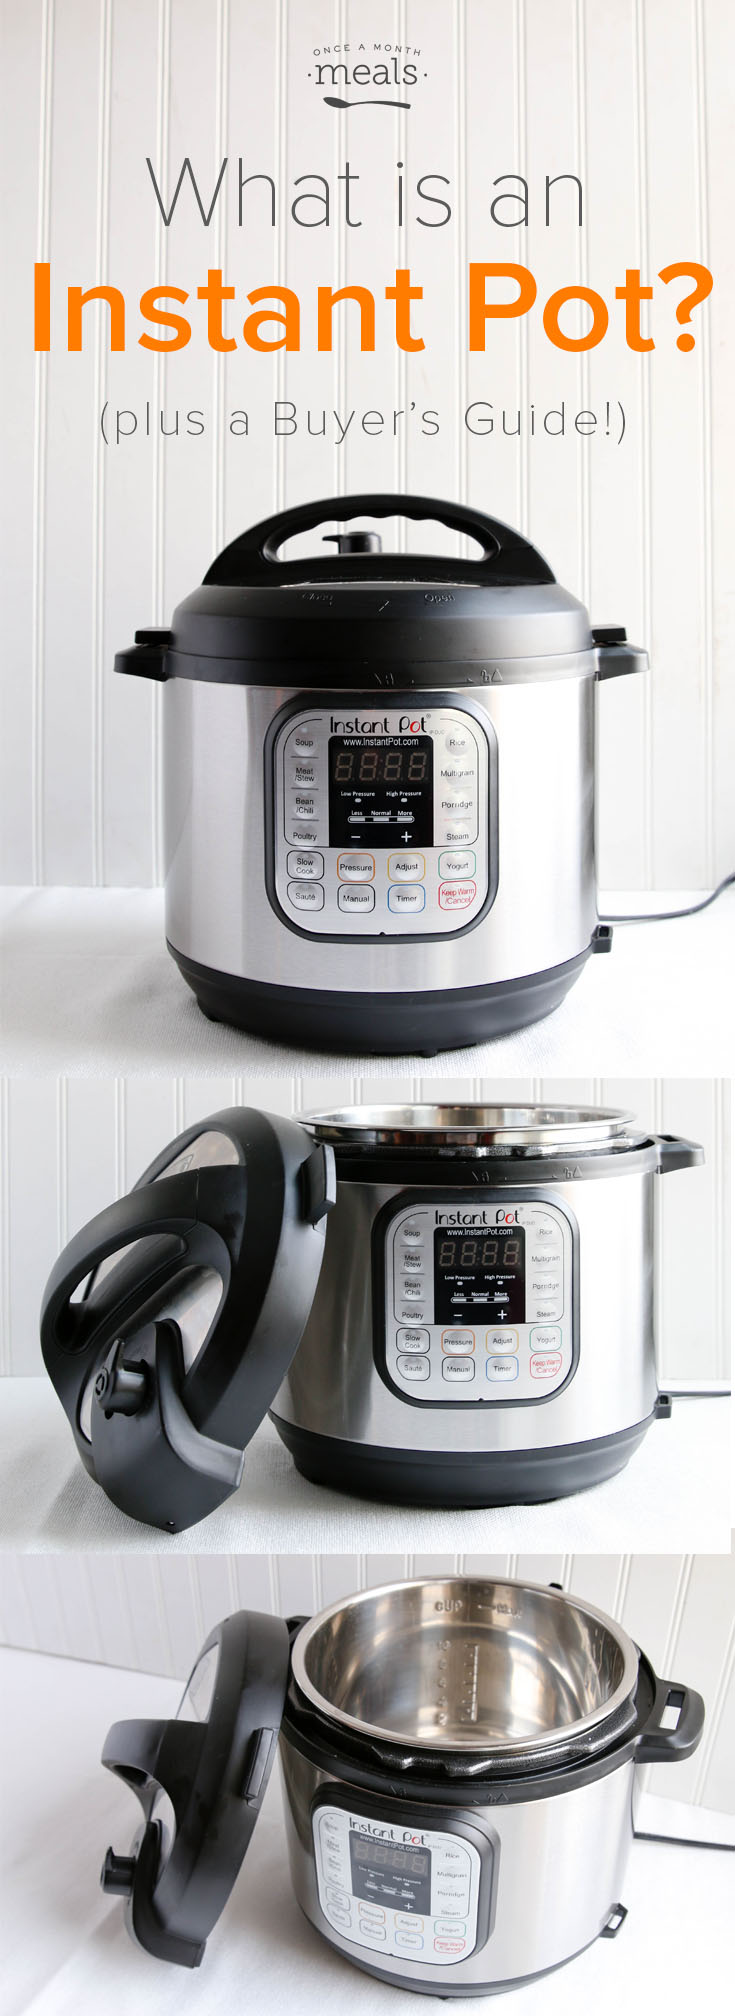 What is an Instant Pot? (and Buyer's Guide) - should I get one, what does it do, will it sit on the shelf, do I really need it?